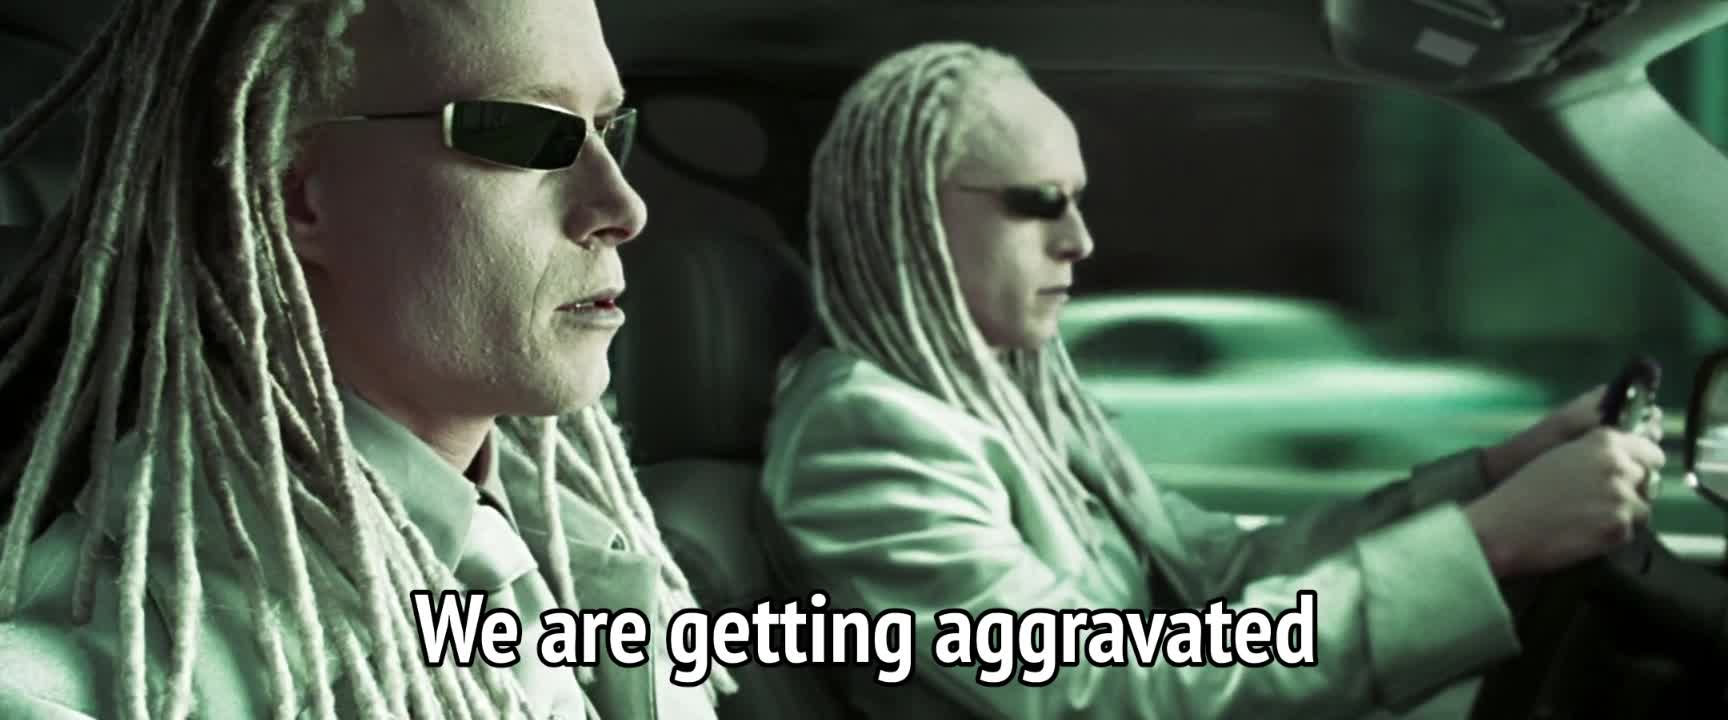 annoyed, frustrated, frustrating, matrix, the matrix, The Matrix Reloaded - We are getting aggravated GIFs